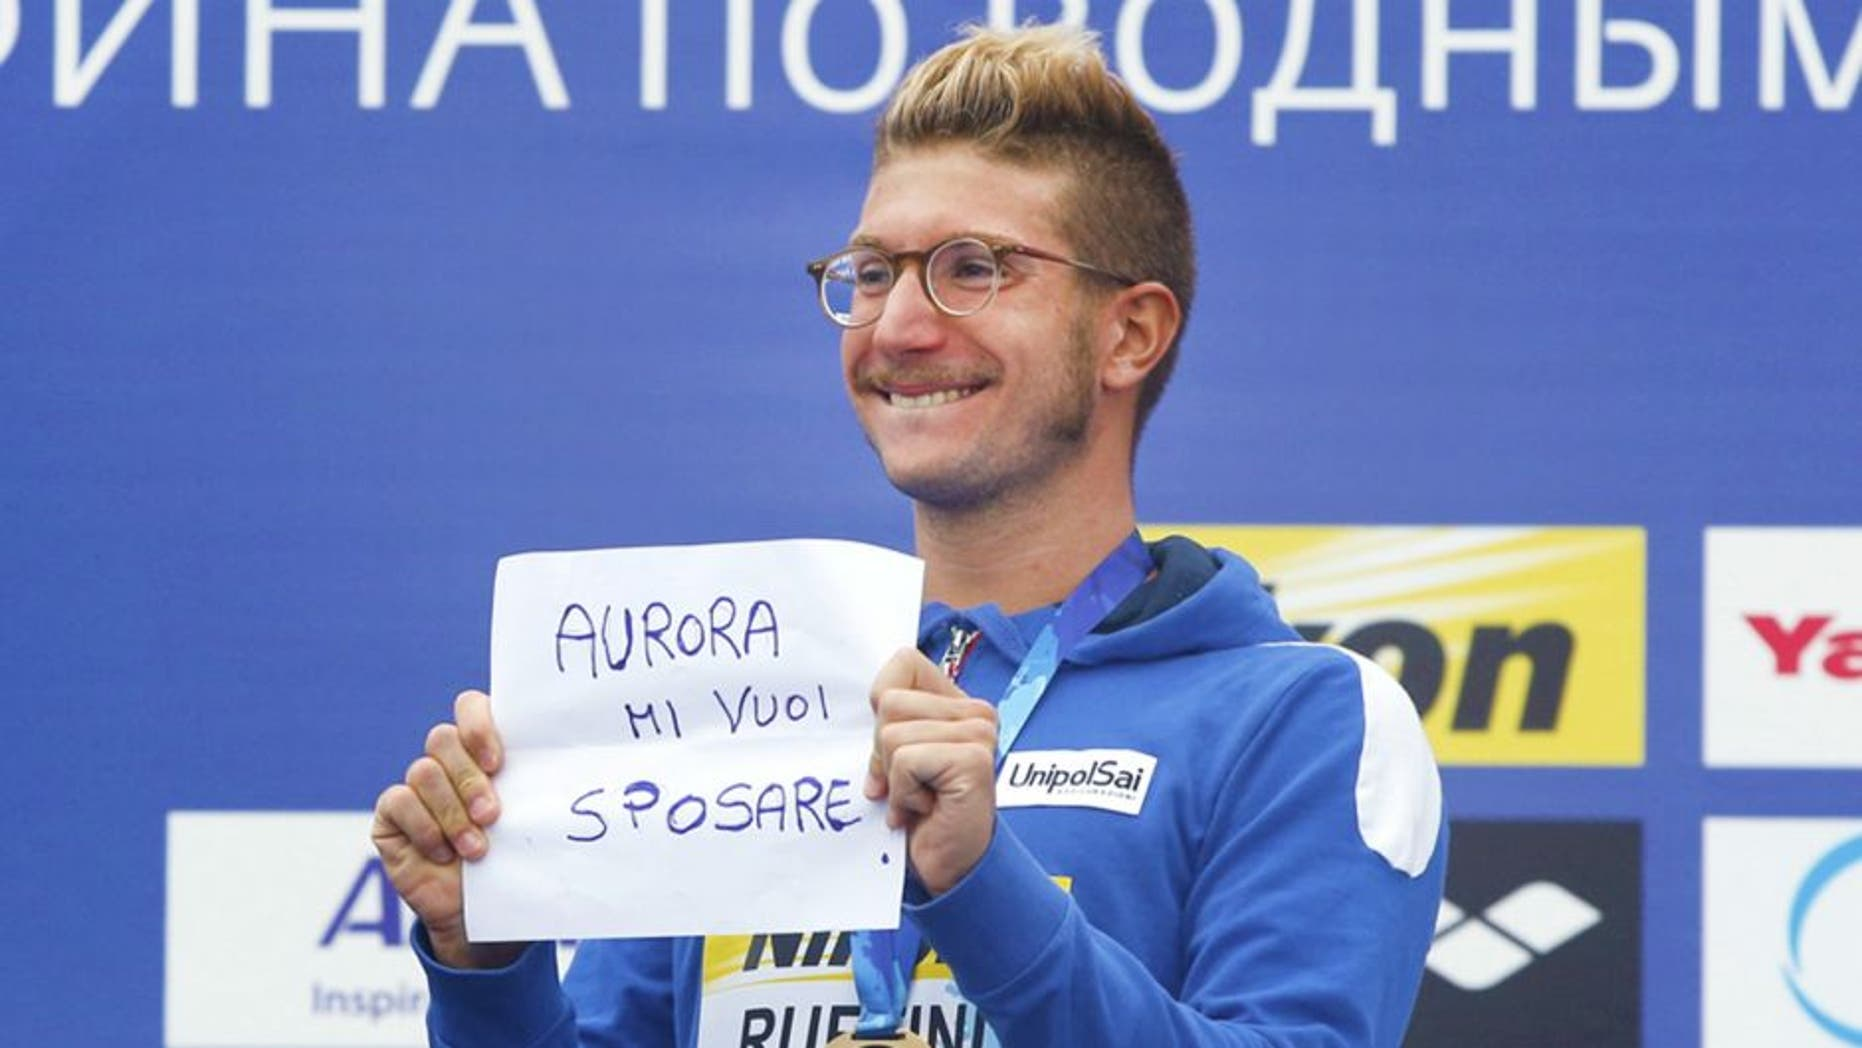 "Italy's gold medal winner Simone Ruffini shows a placard ""Aurora, you want to marry me"" during the ceremony for the men's 25km open water swim competition at the Swimming World Championships in Kazan, Russia, Saturday, Aug. 1, 2015. (AP Photo/Sergei Grits)"